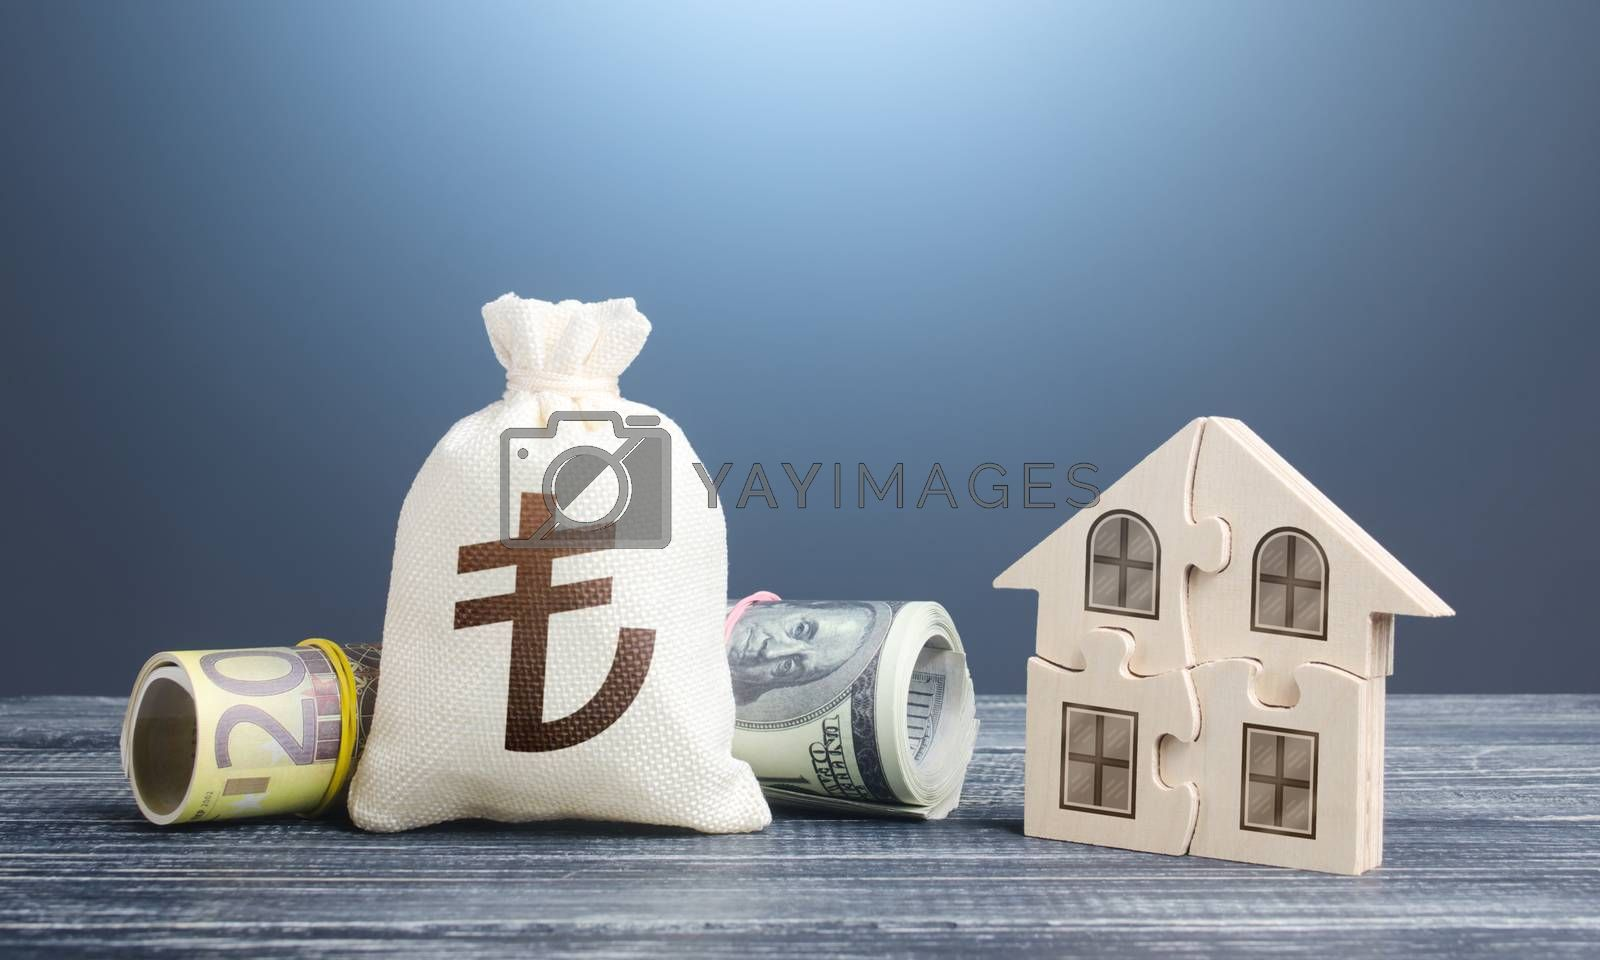 Turkish lira money bag and puzzle house. Mortgage loan on purchase, building maintenance and utility services costs. Property valuation. State social programs. Housing cooperative membership.